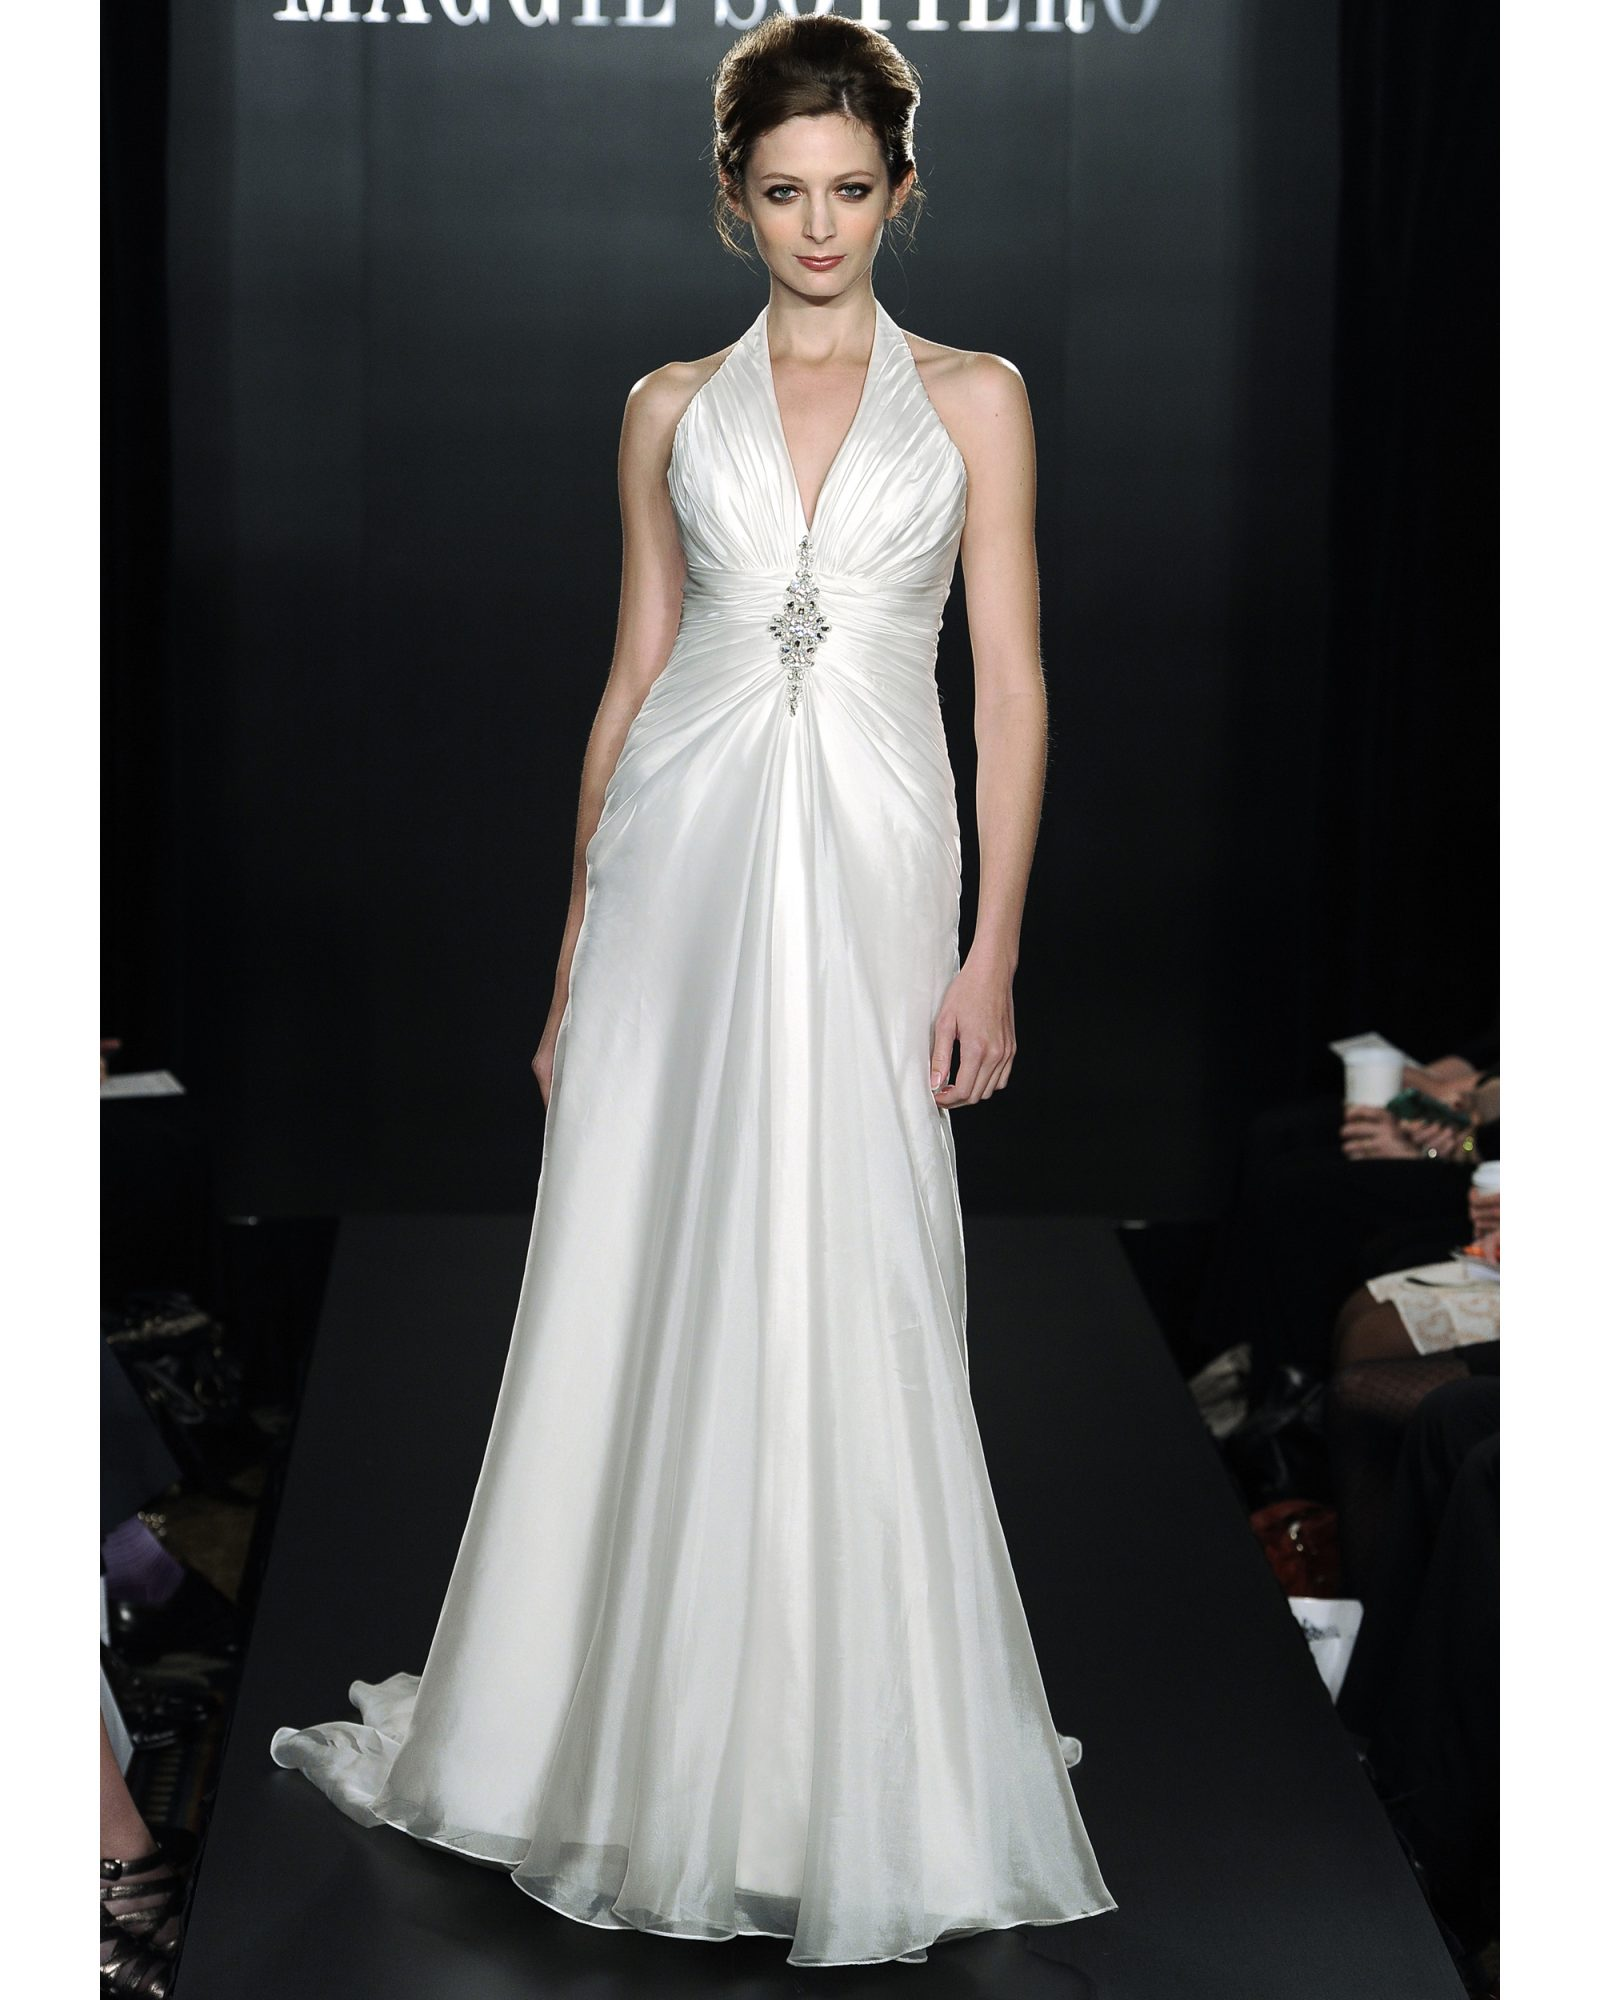 maggie-sottero-fall2012-wd108109_016.jpg